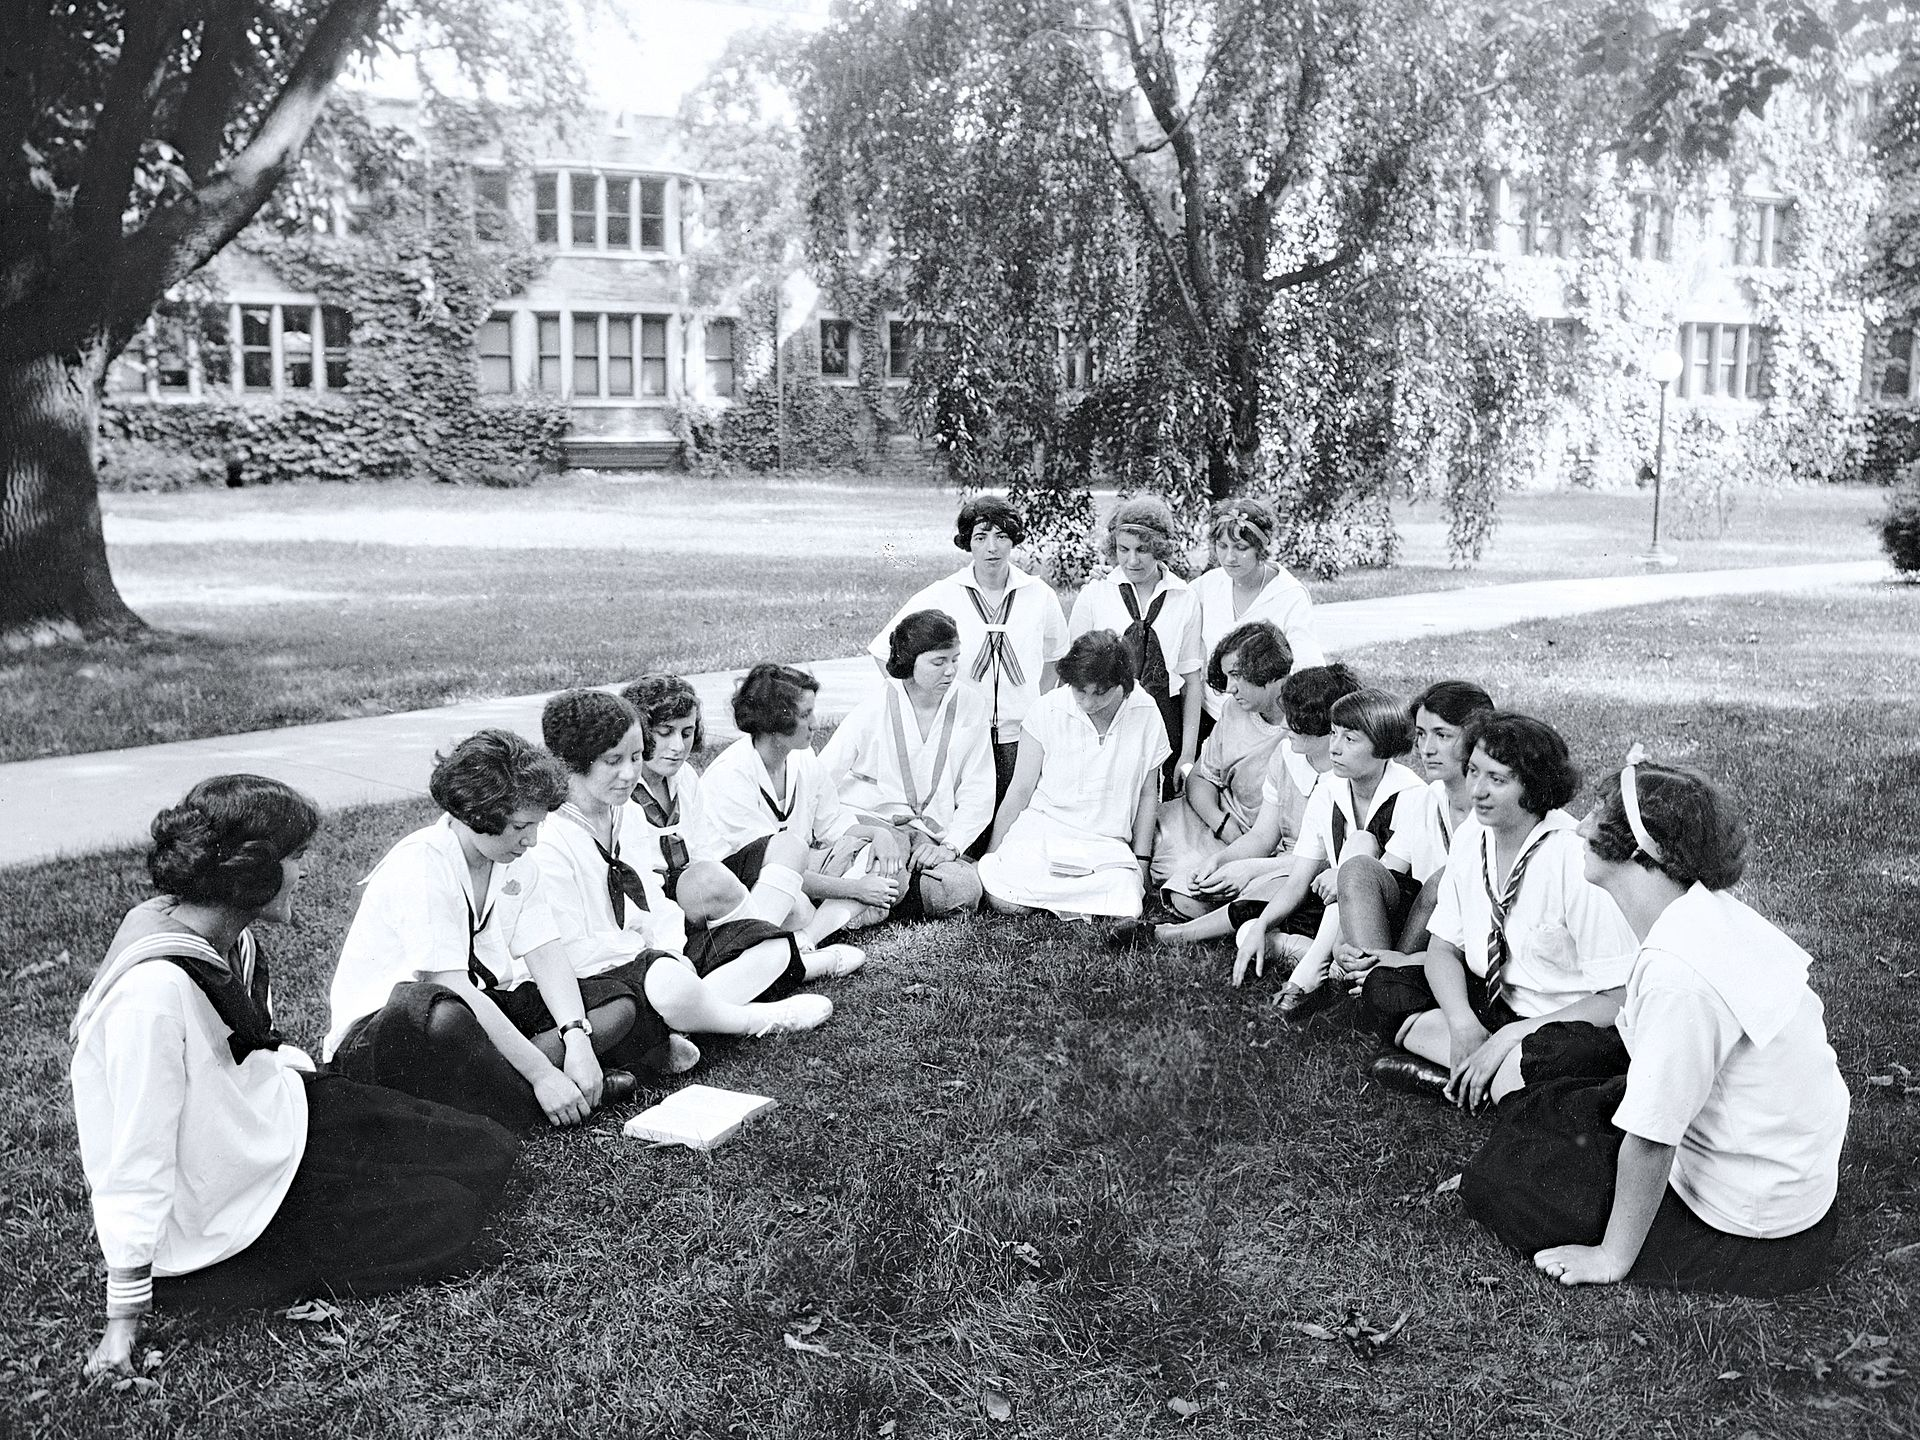 single women in bryn mawr Why bryn mawr: i chose bryn mawr because it's an all-women's college with a small teacher-to-student ratio and highly qualified staff that help their students excel tennis battle animal.